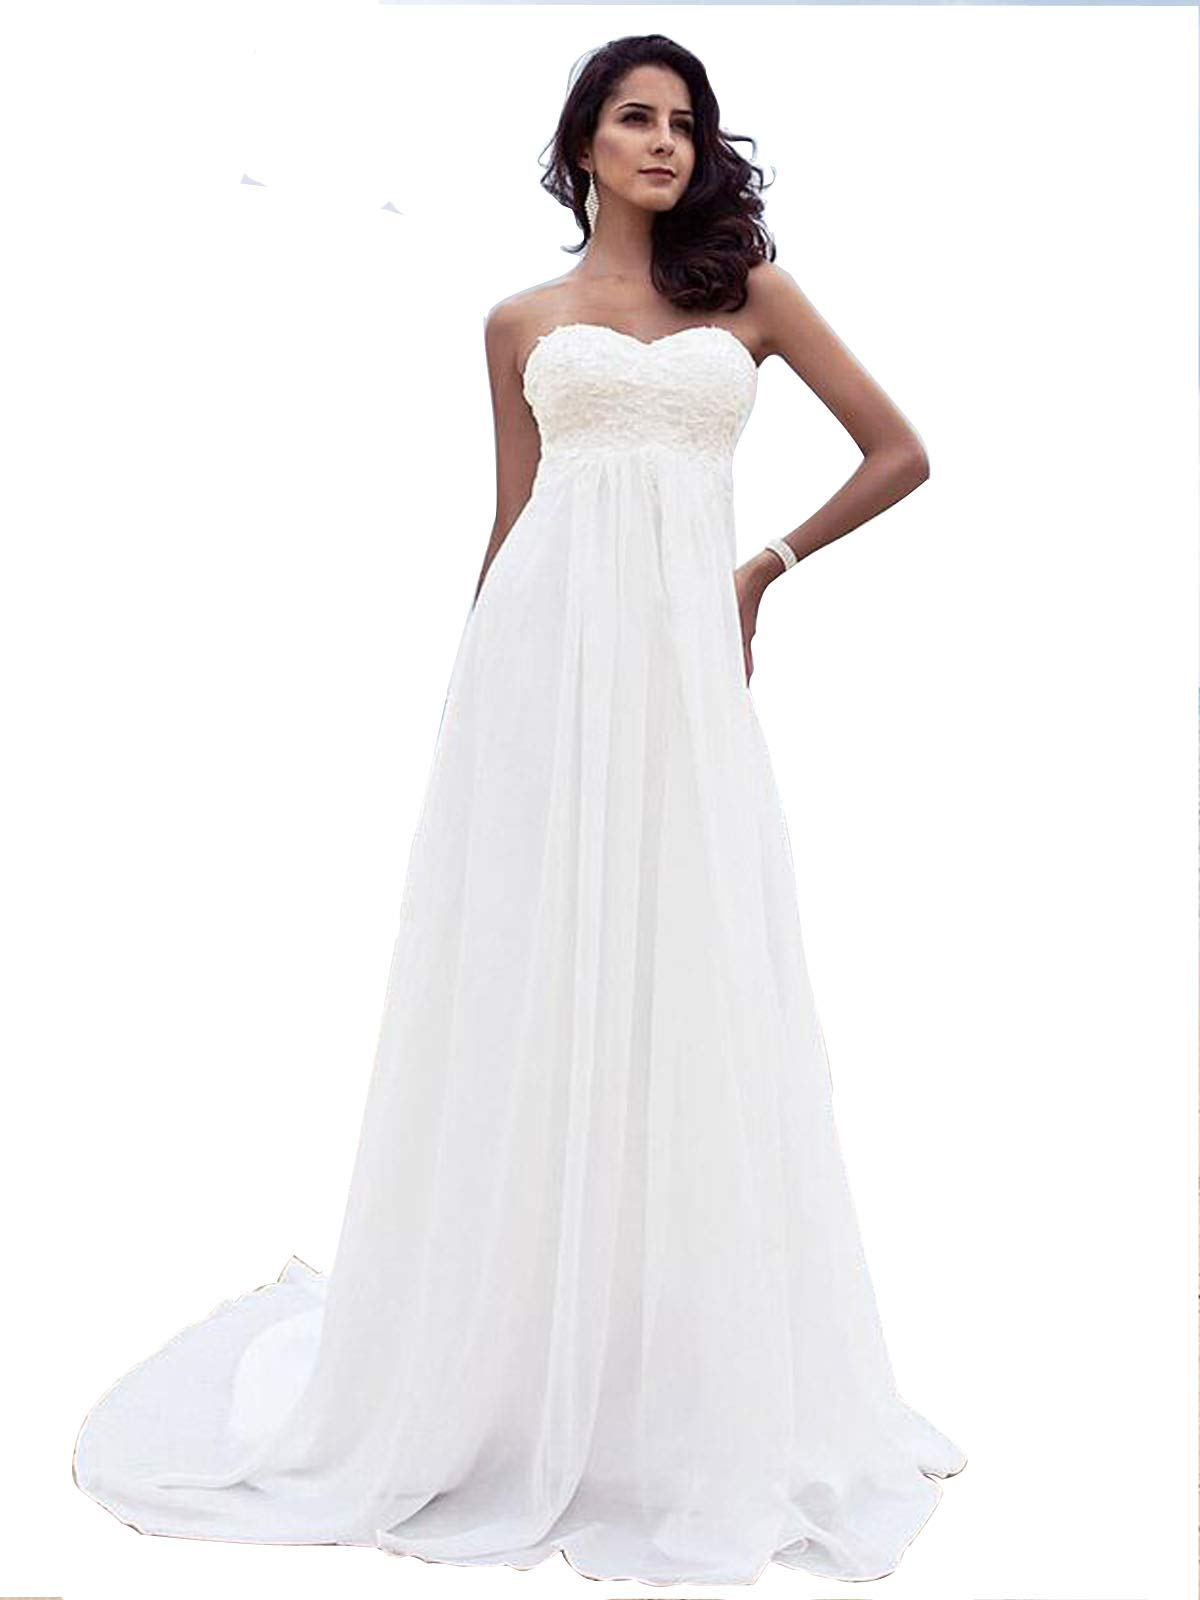 Beach Wedding Dress Plus Size for Woman Long Sweetheart Wedding Dresses  Lace Pearls Rhinestones Bride Gowns 2019